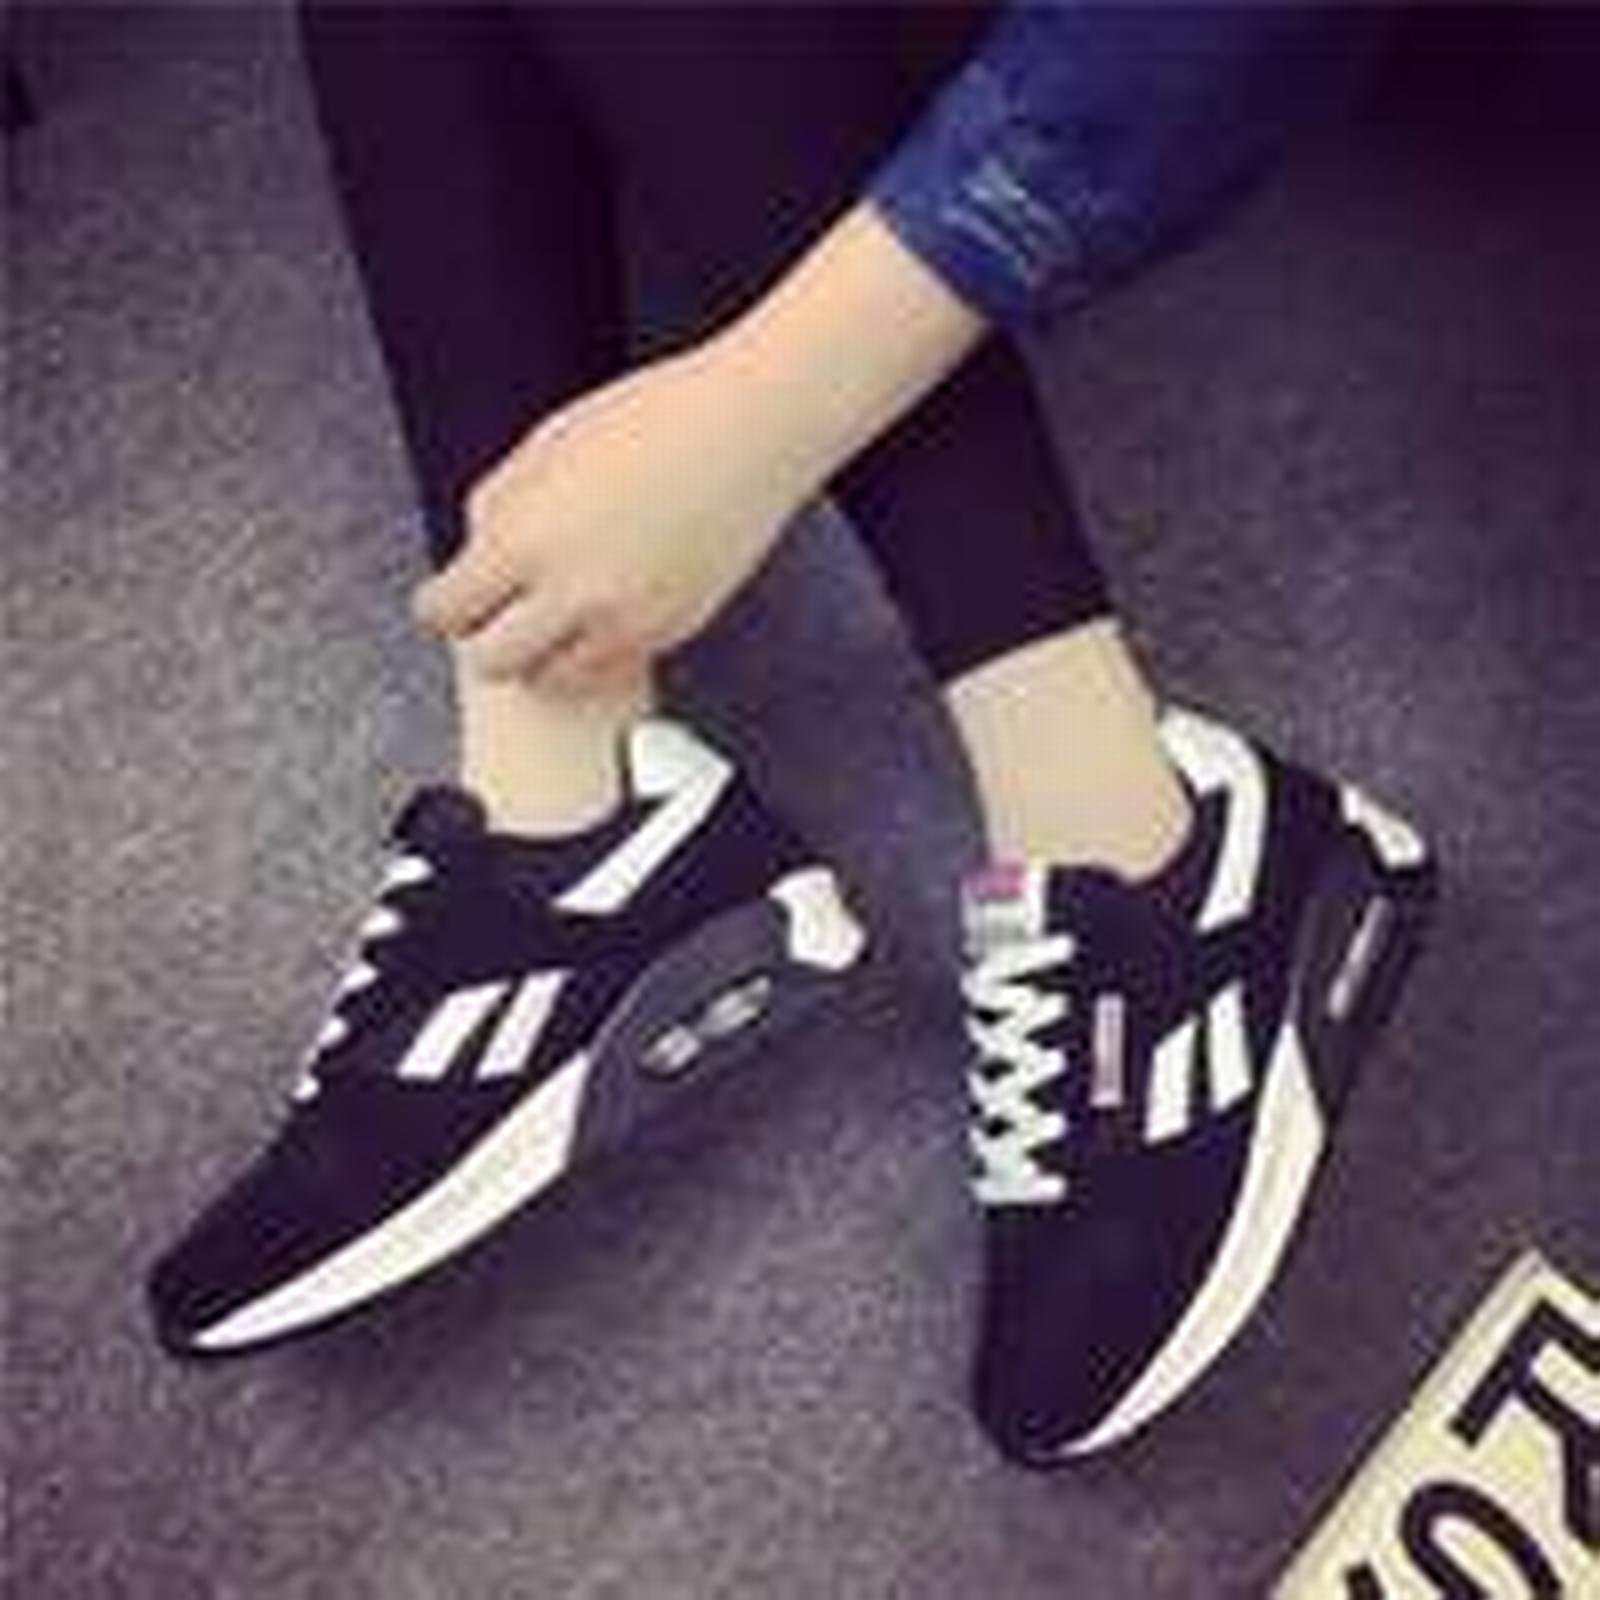 Bonanza (Global) pa020 Low-cut flat color,size heels air cushion sneaker,spell color,size flat 35-40, black/white 8d917a